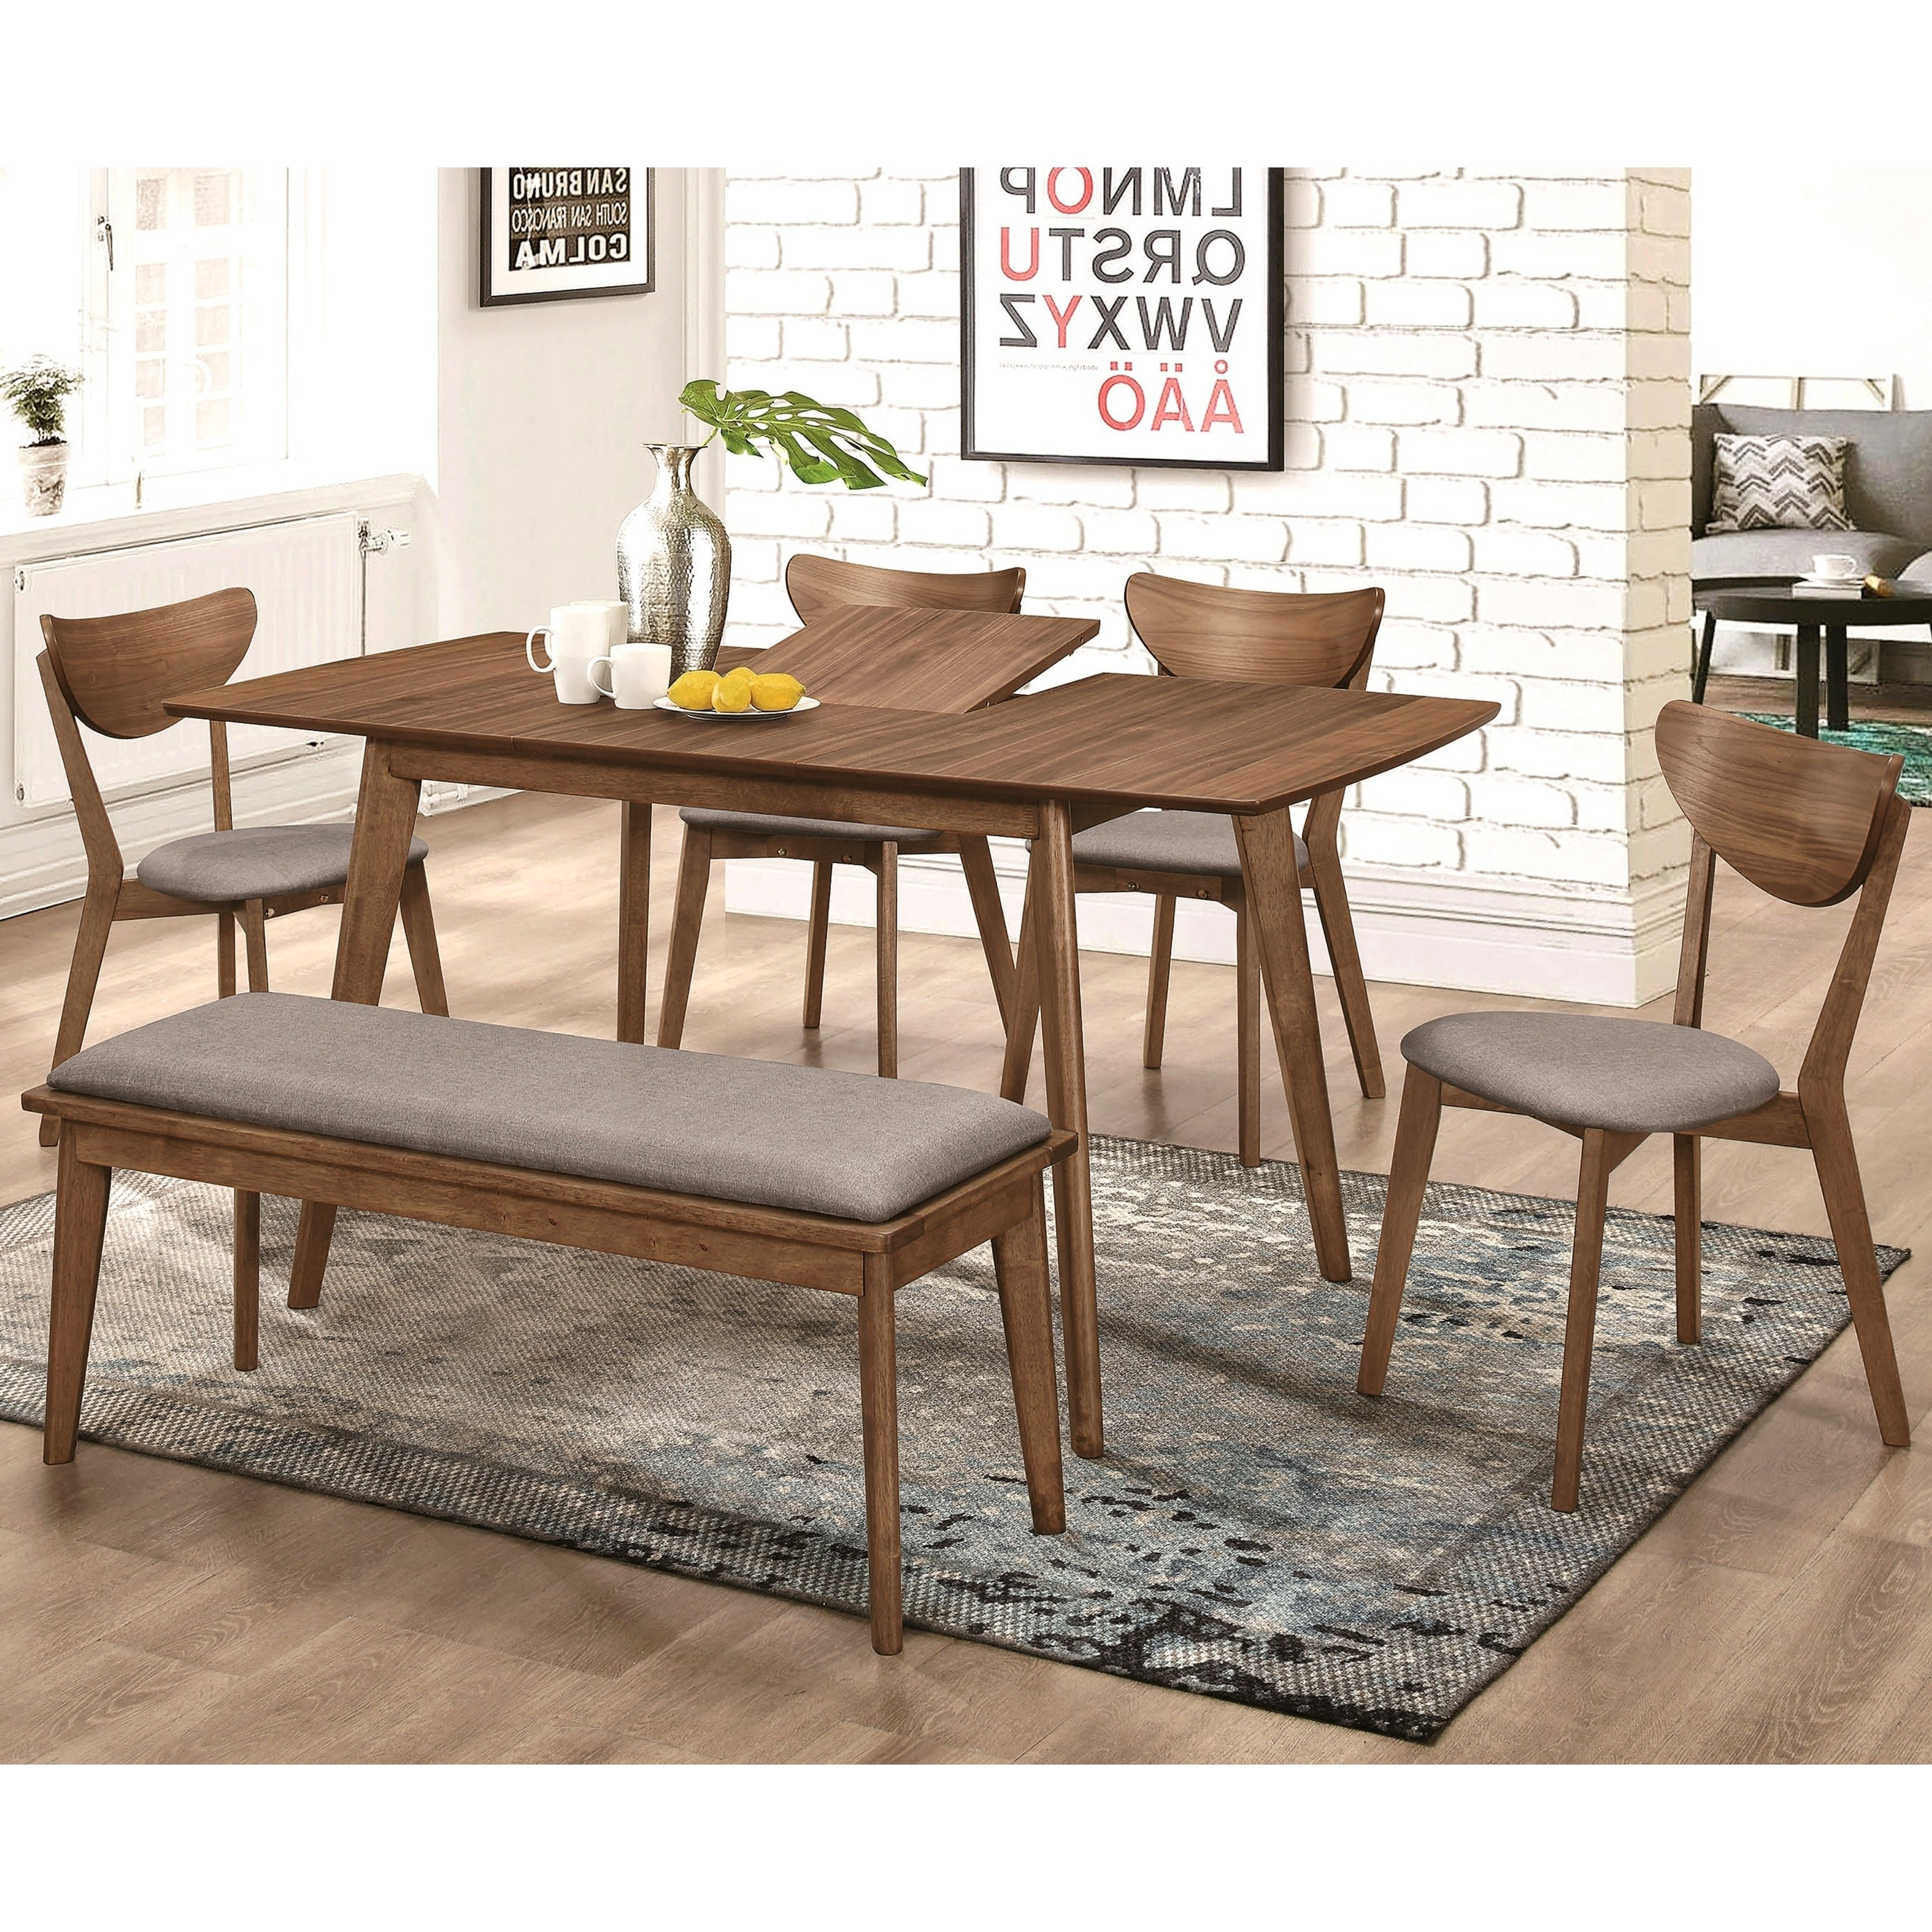 Buy 6 Piece Sets Kitchen & Dining Room Sets Online At Overstock With Best And Newest Osterman 6 Piece Extendable Dining Sets (Set Of 6) (View 9 of 25)